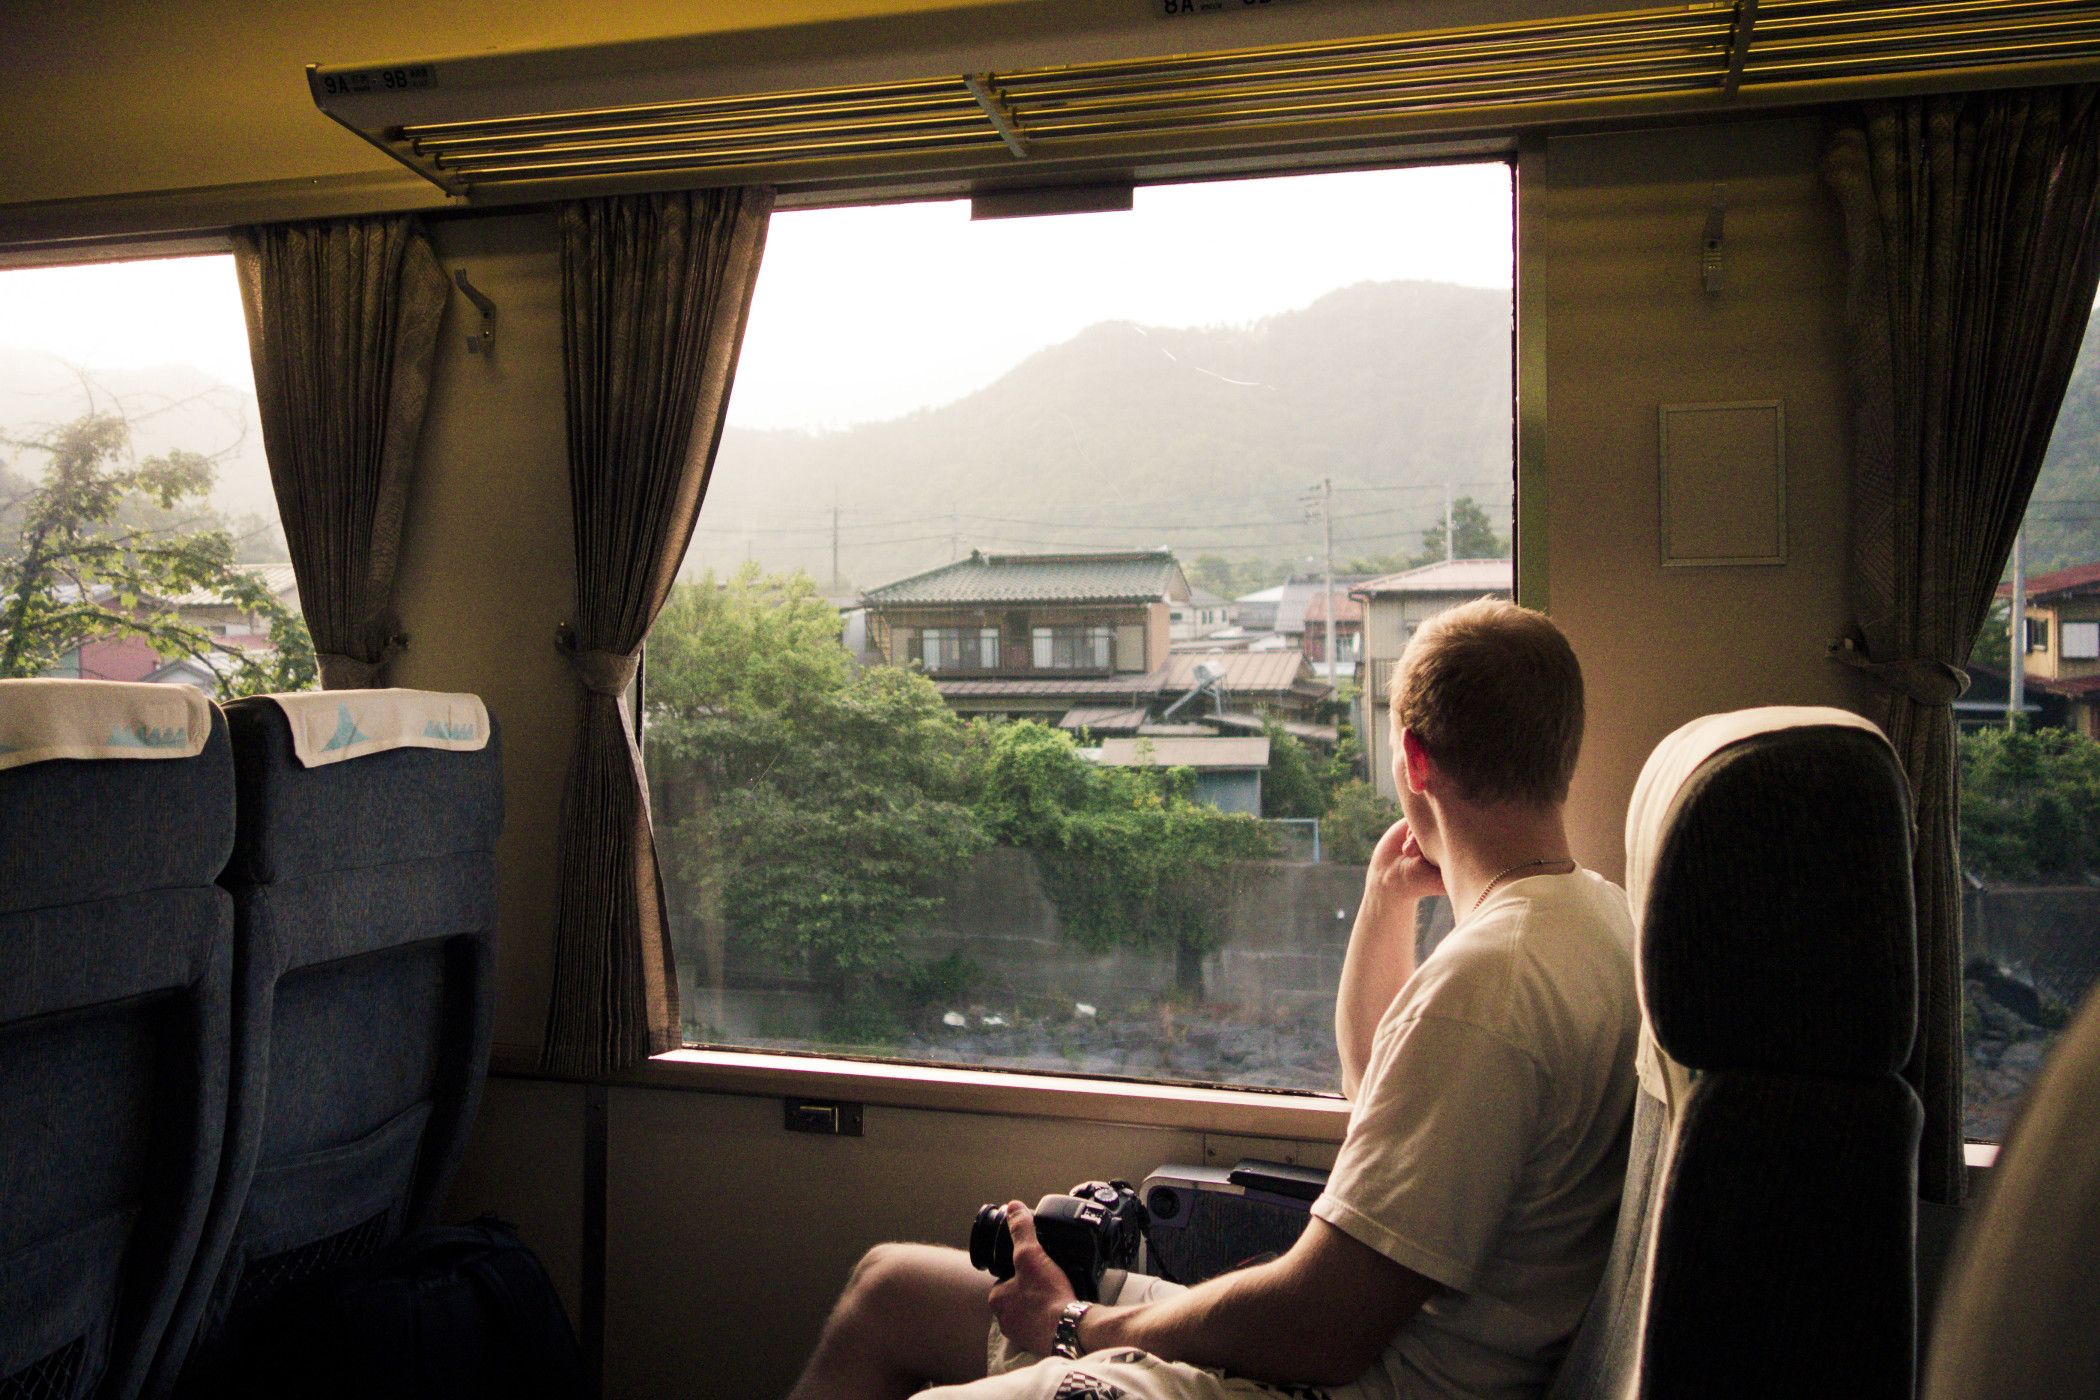 in-thought-on-the-train-across-the-country-side_t20_BAbxxv